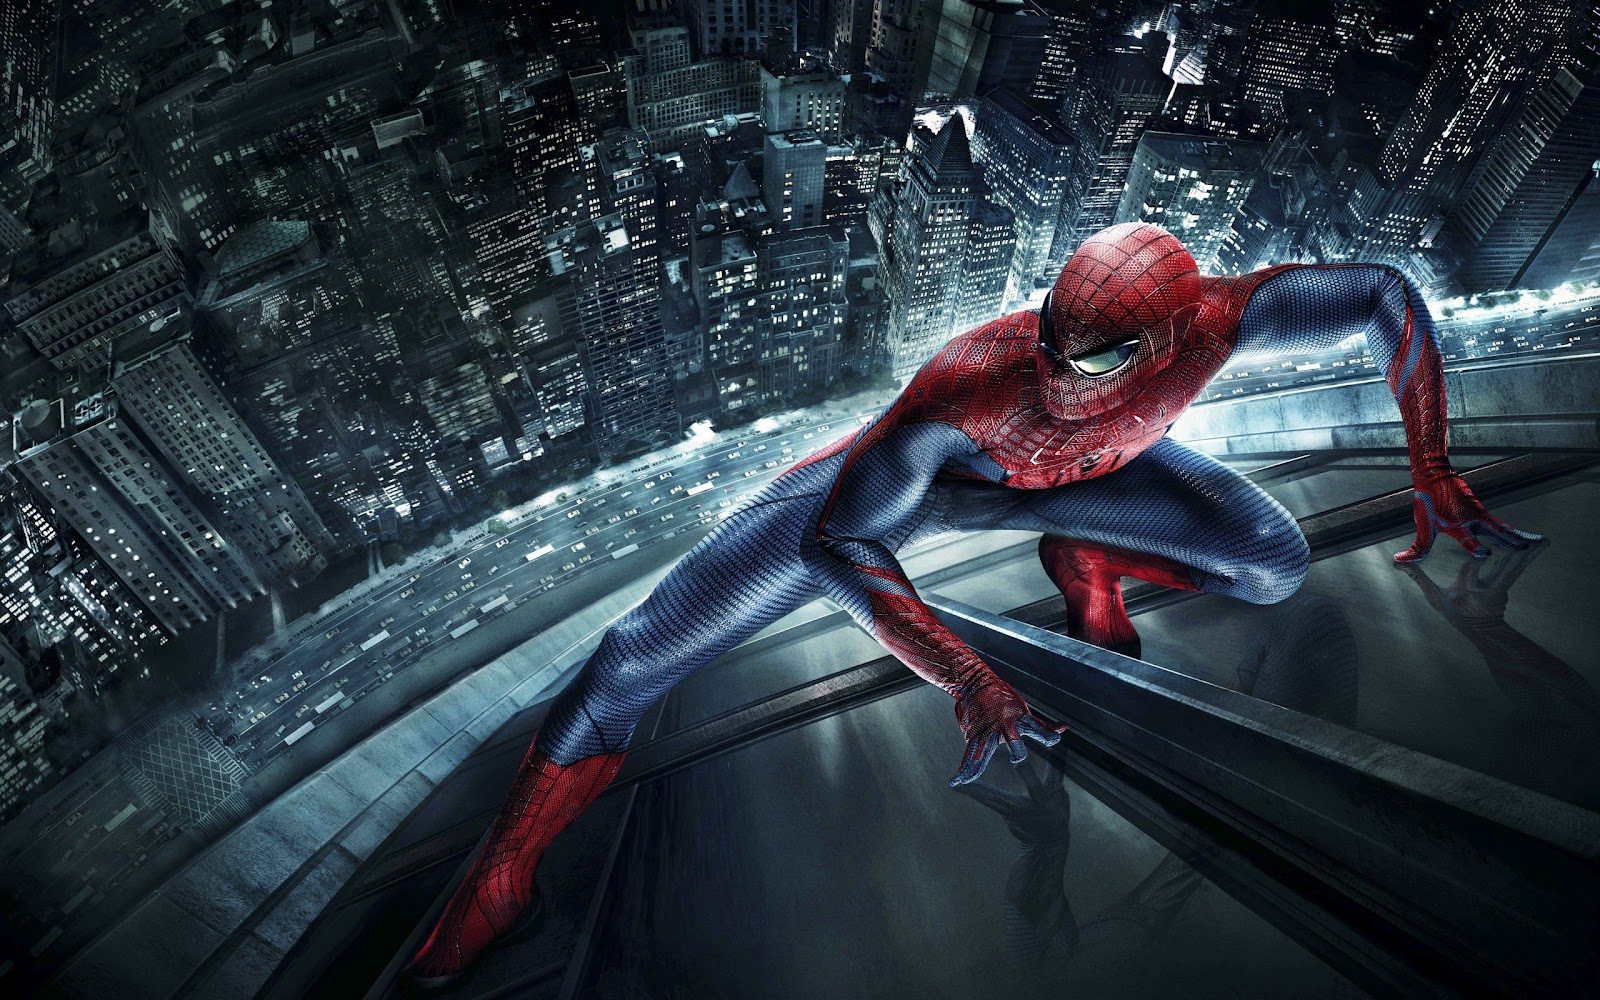 http://1.bp.blogspot.com/-uwwDOXujUWA/T_Kp2PBA8zI/AAAAAAAACbs/v7anRoiangE/s1600/Spider_Man_on_Glass_Skyscaper_City_Night_HD_Desktop_Wallpaper-HidefWall.Blogspot.Com.jpg